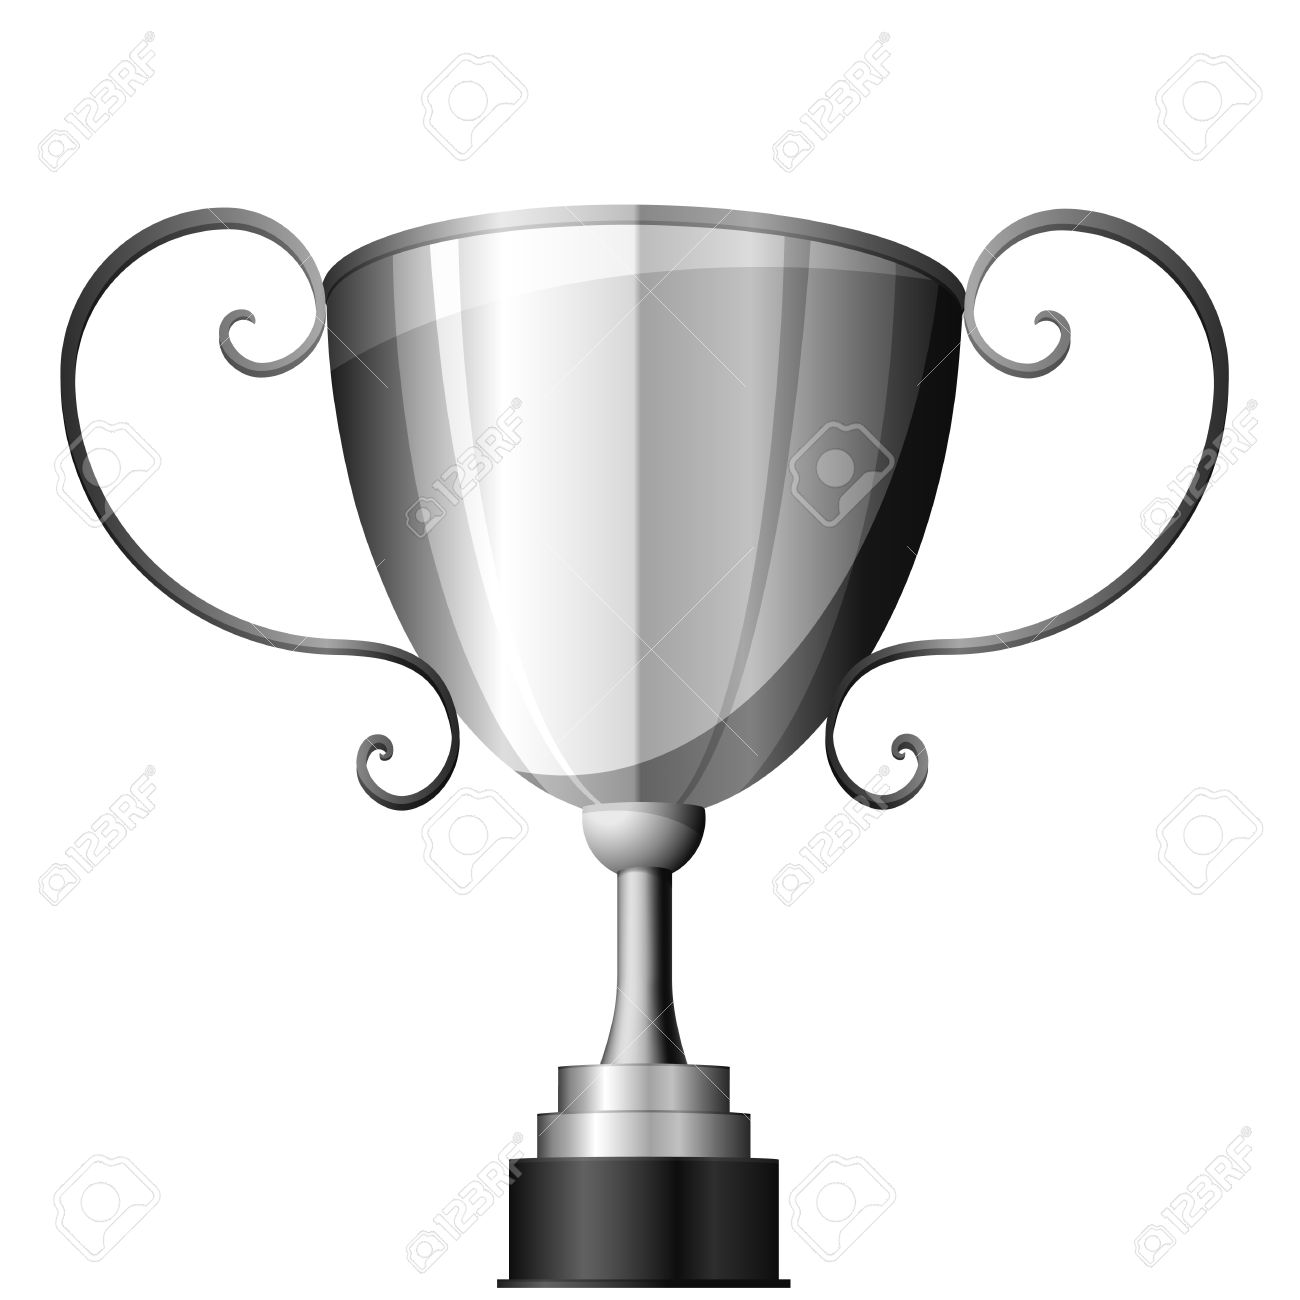 Detailed Illustration Of A Silver Trophy